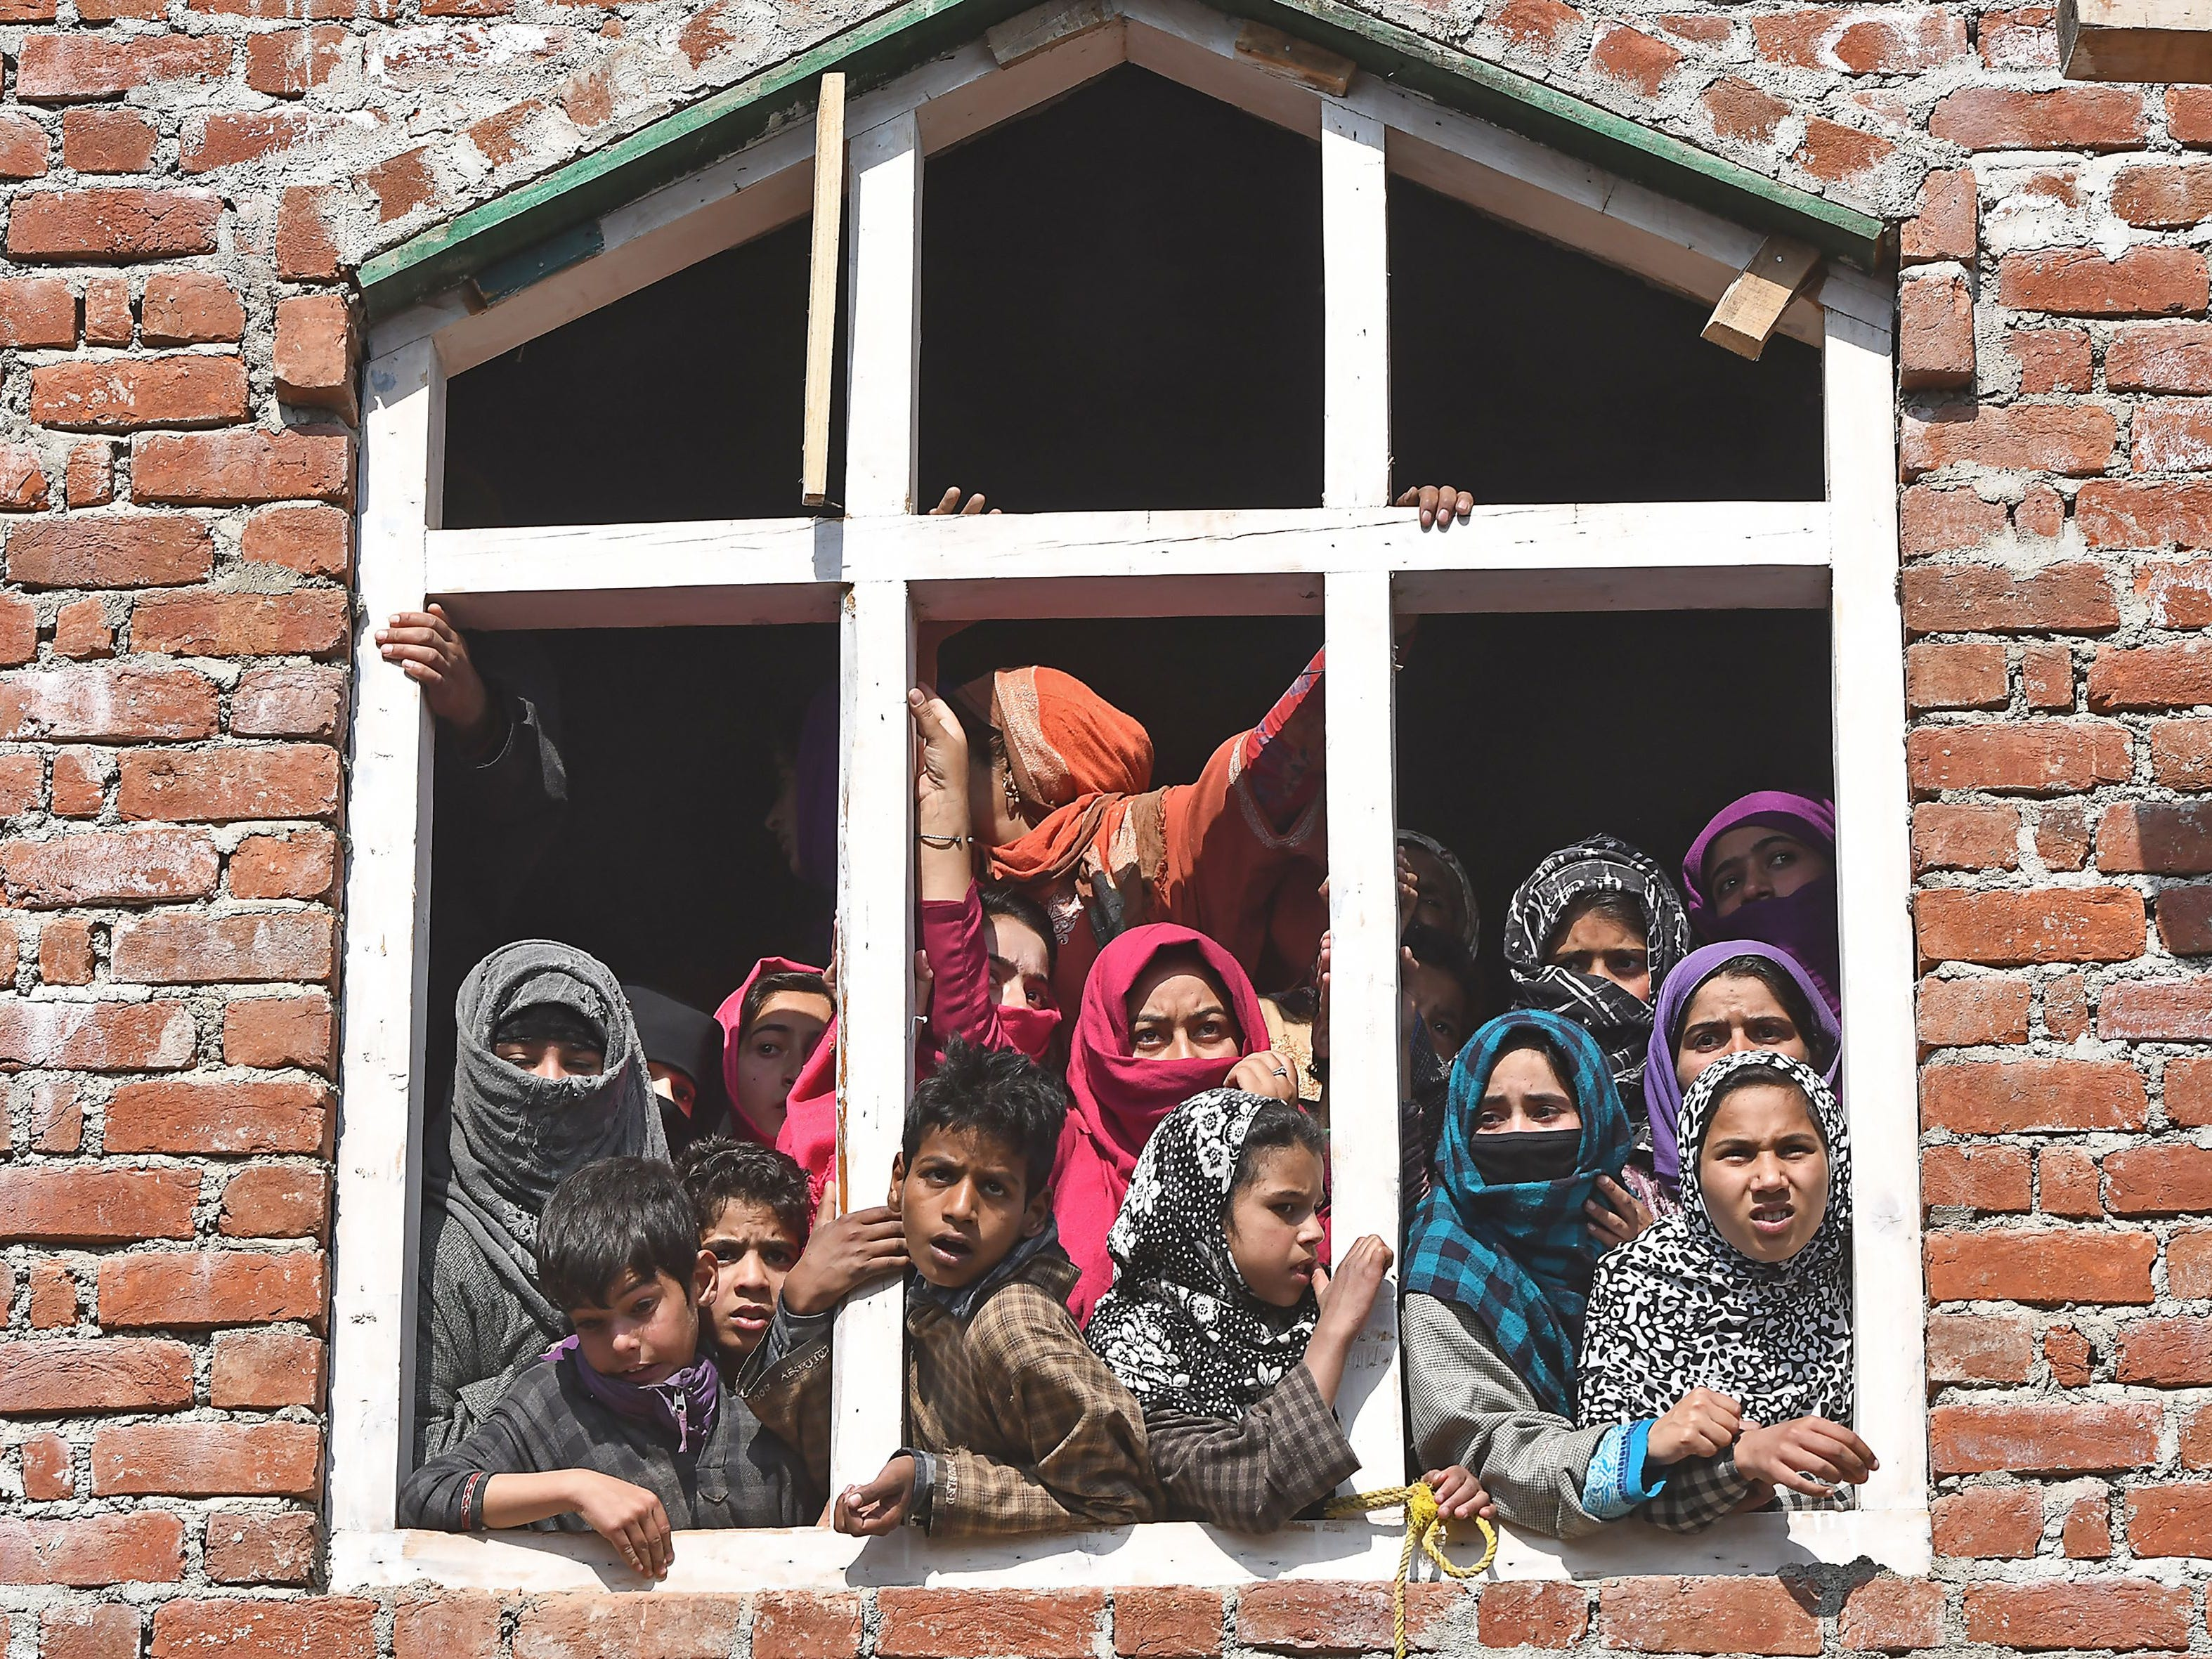 Villagers watch a funeral procession for militant Sahir Ahmed, who was killed in a gun battle with Indian soldiers, in Arwani village, in the southern part of Kashmir on Oct. 26, 2018.